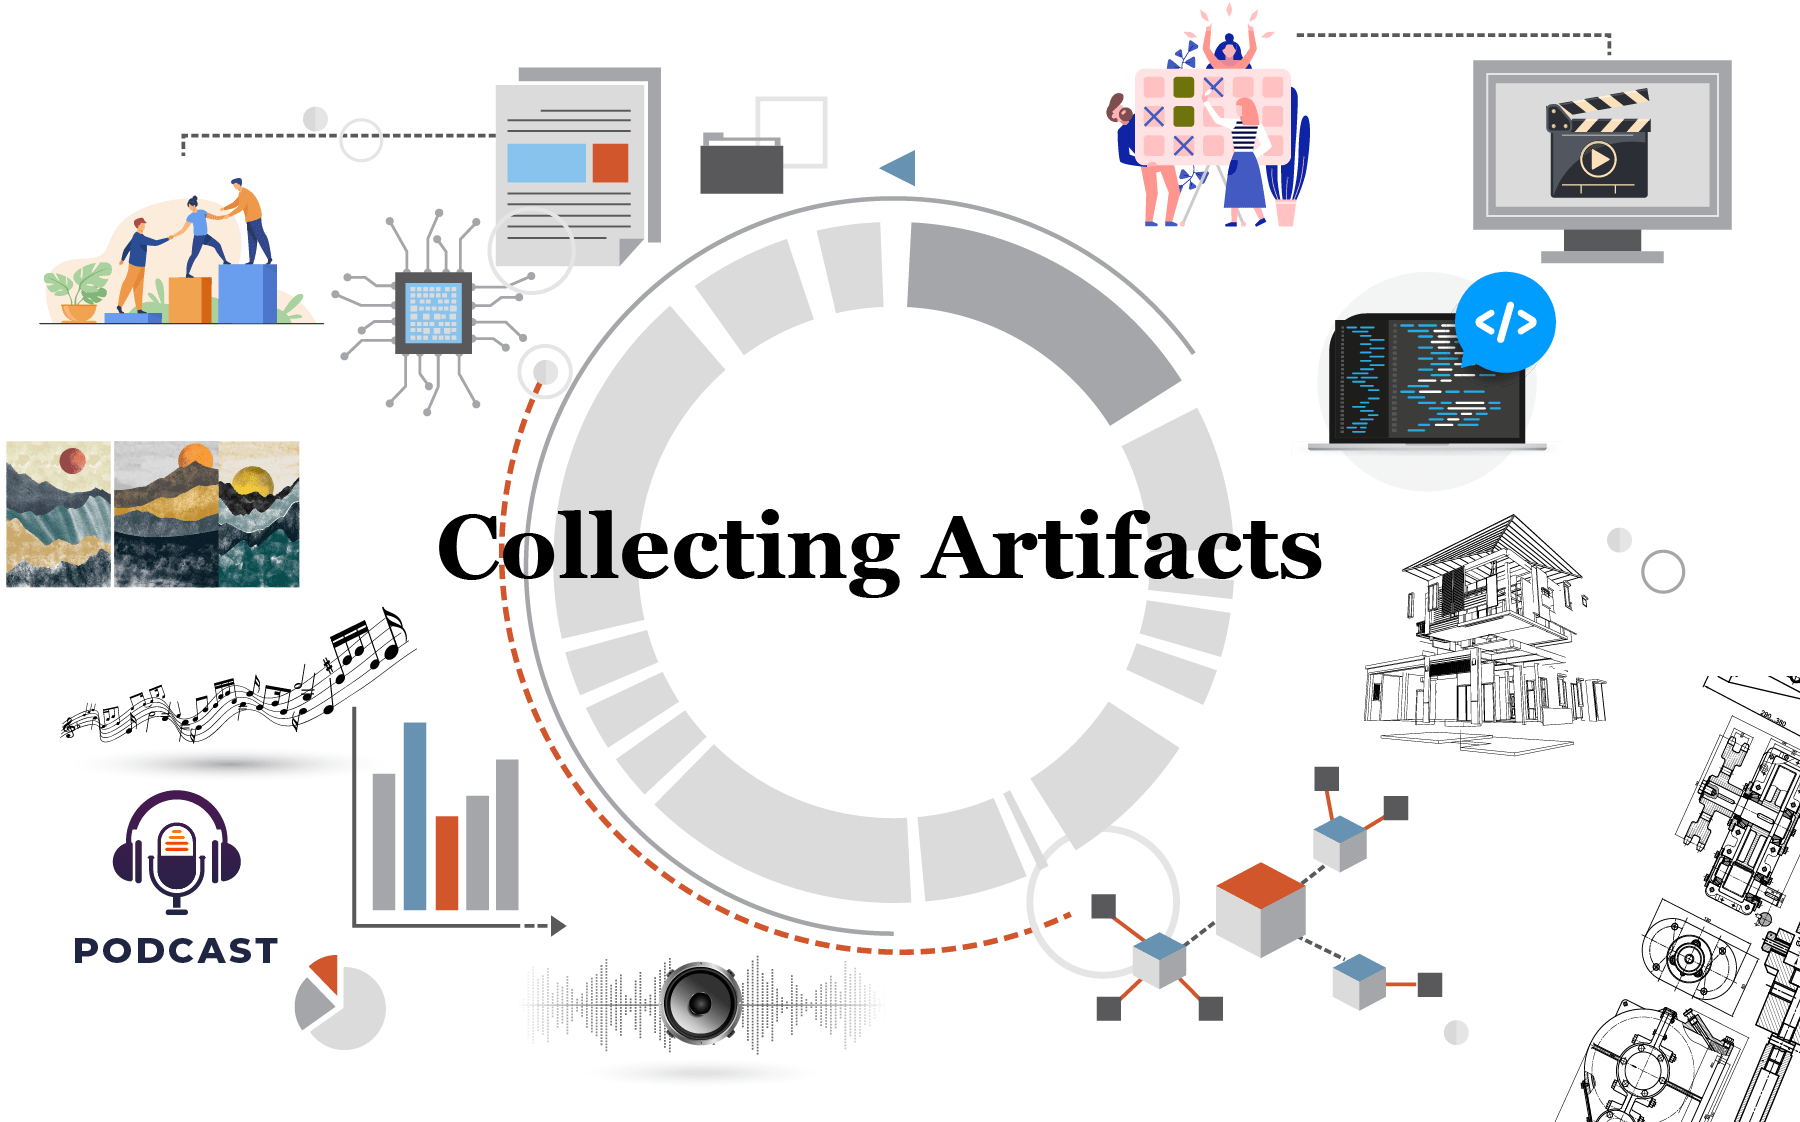 a diagram of different formats of artifacts